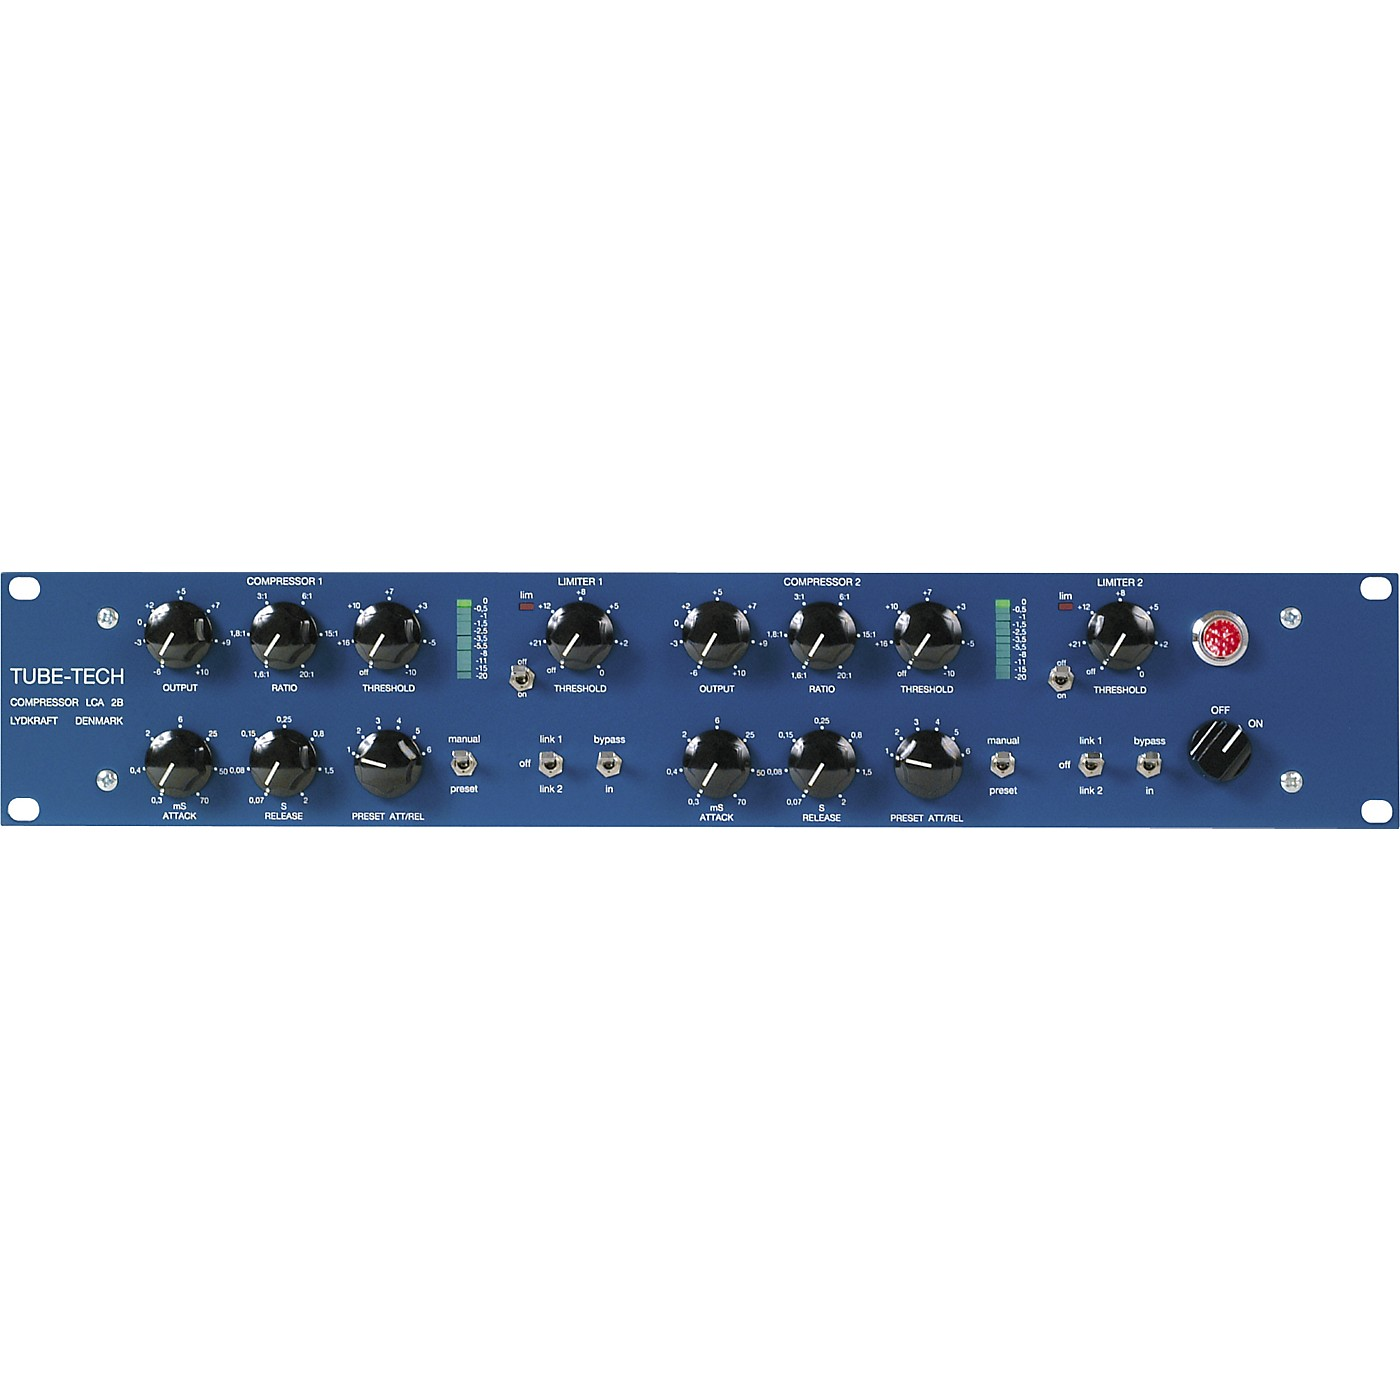 Tube-Tech LCA 2B 2-Channel Compressor and Limiter thumbnail